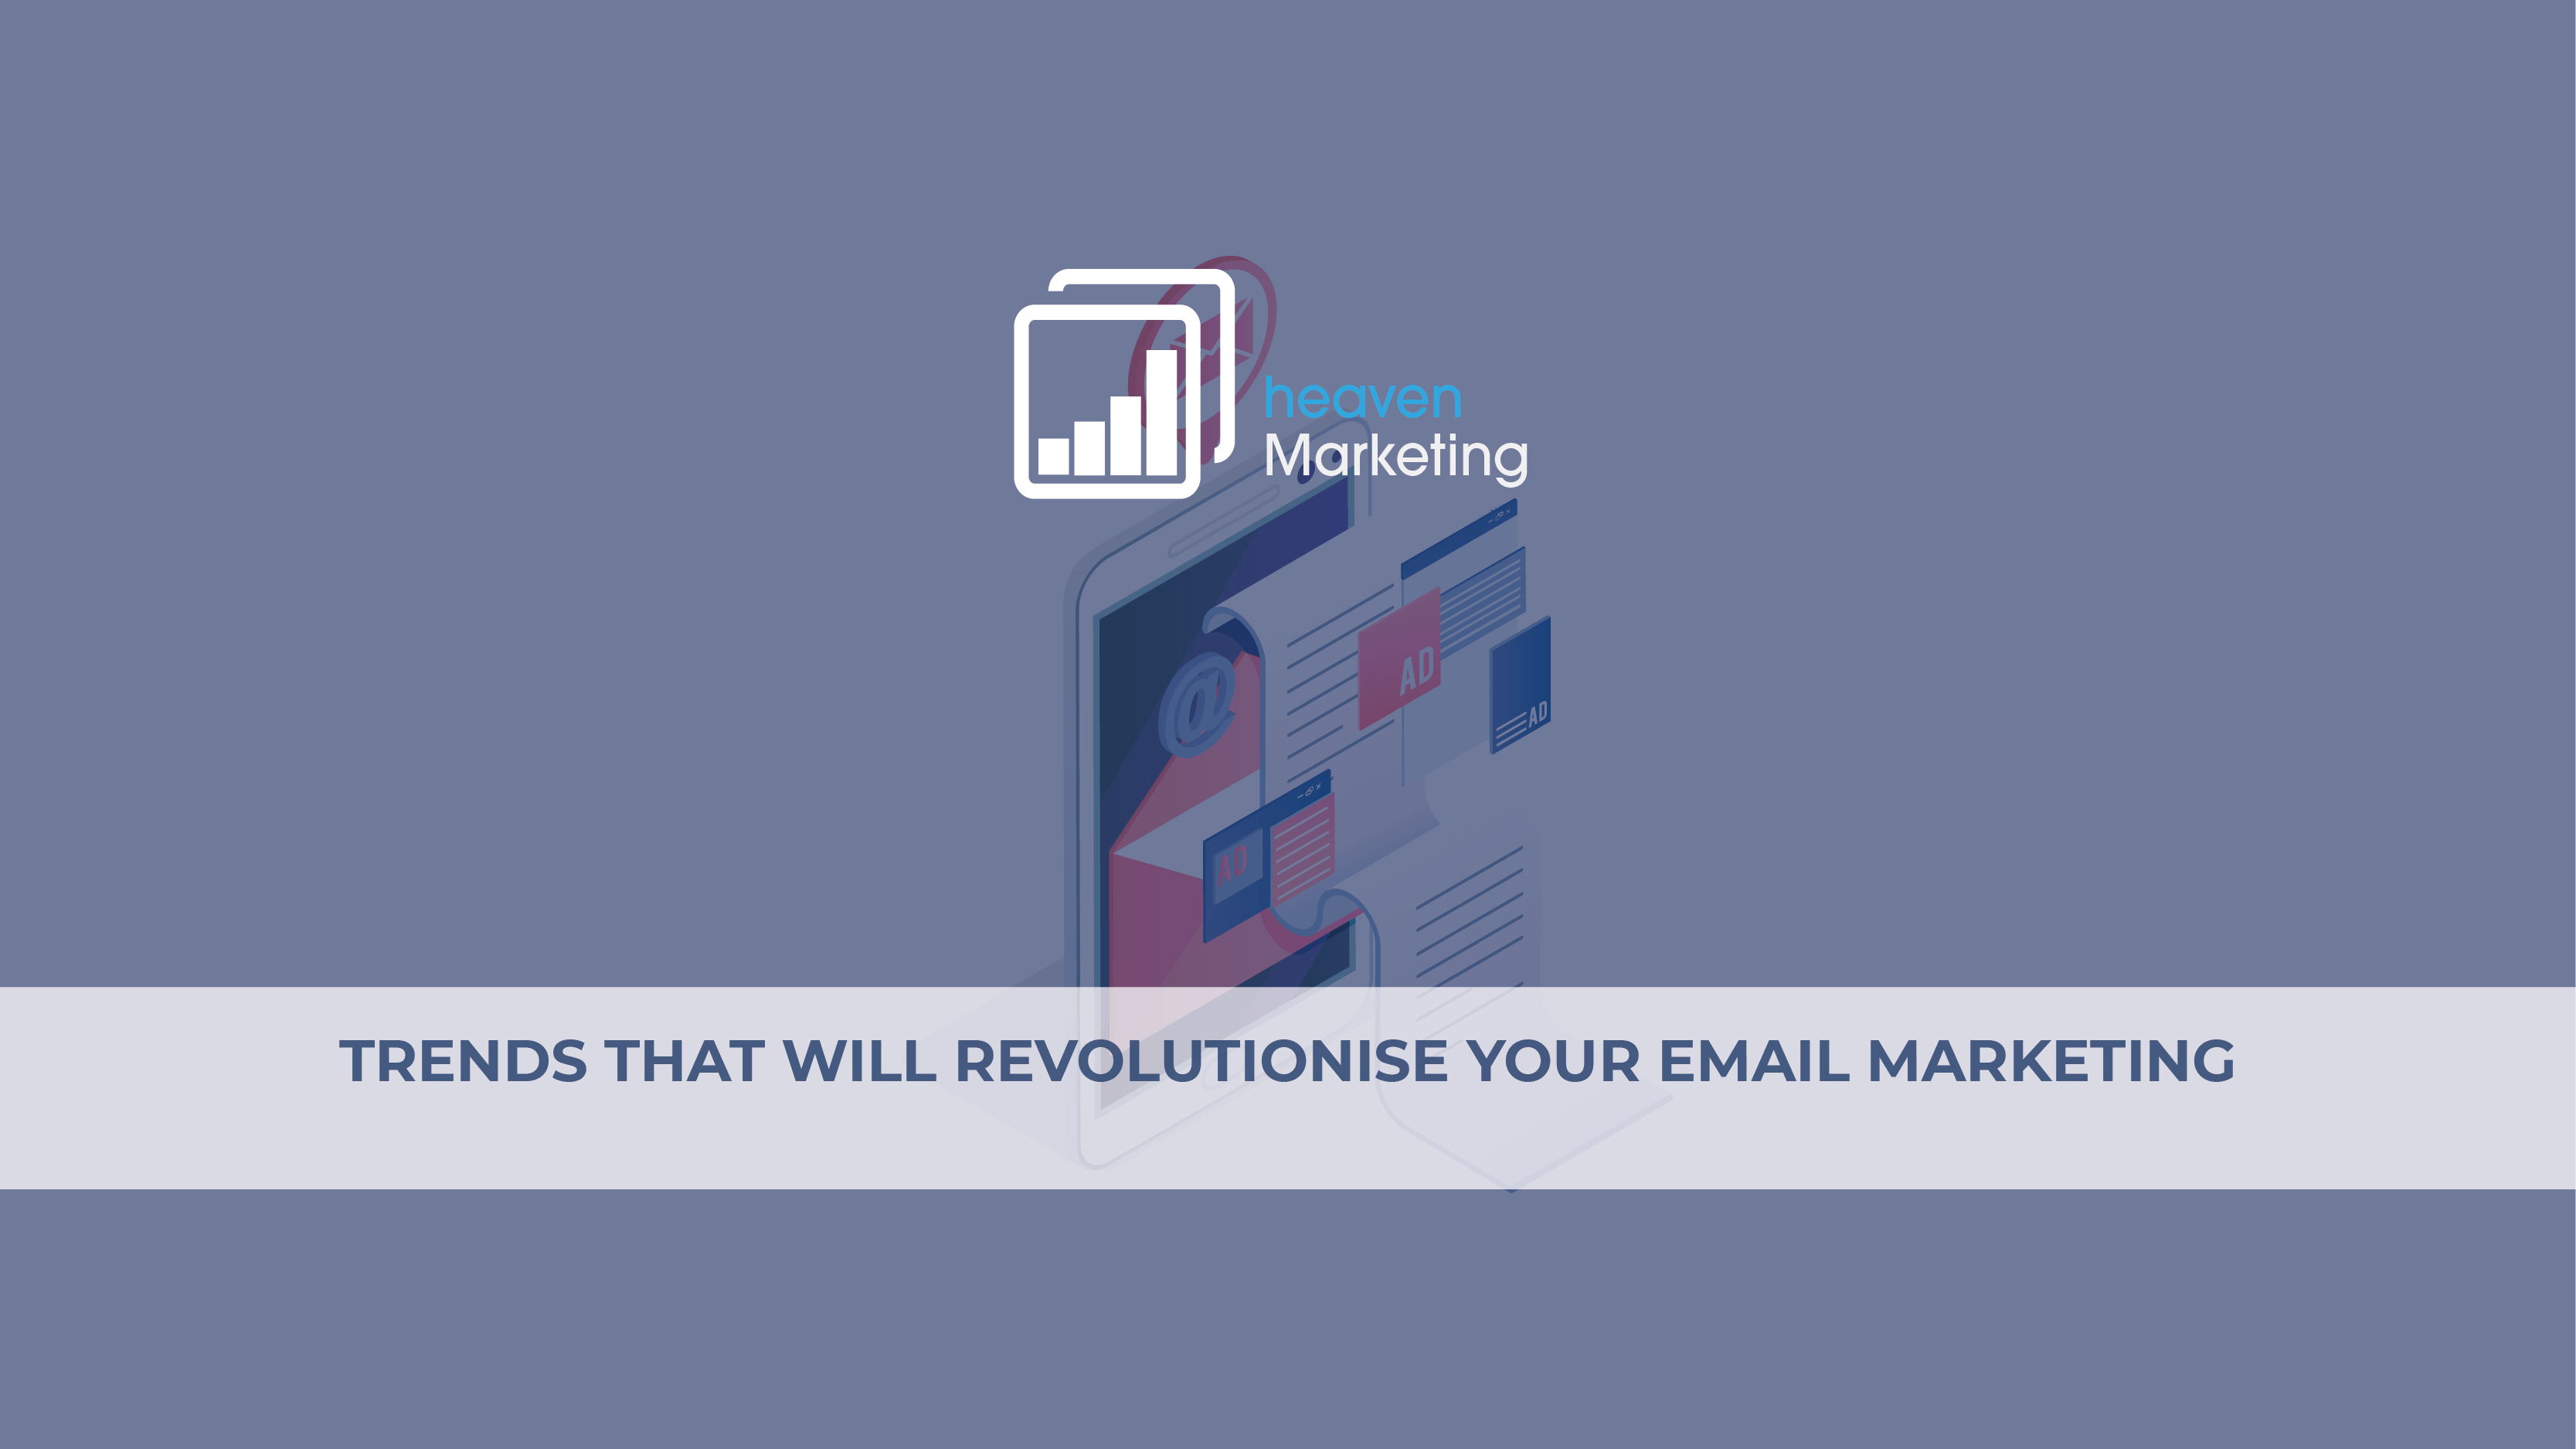 7) 07_BLOG IMAGE_Email Marketing-01